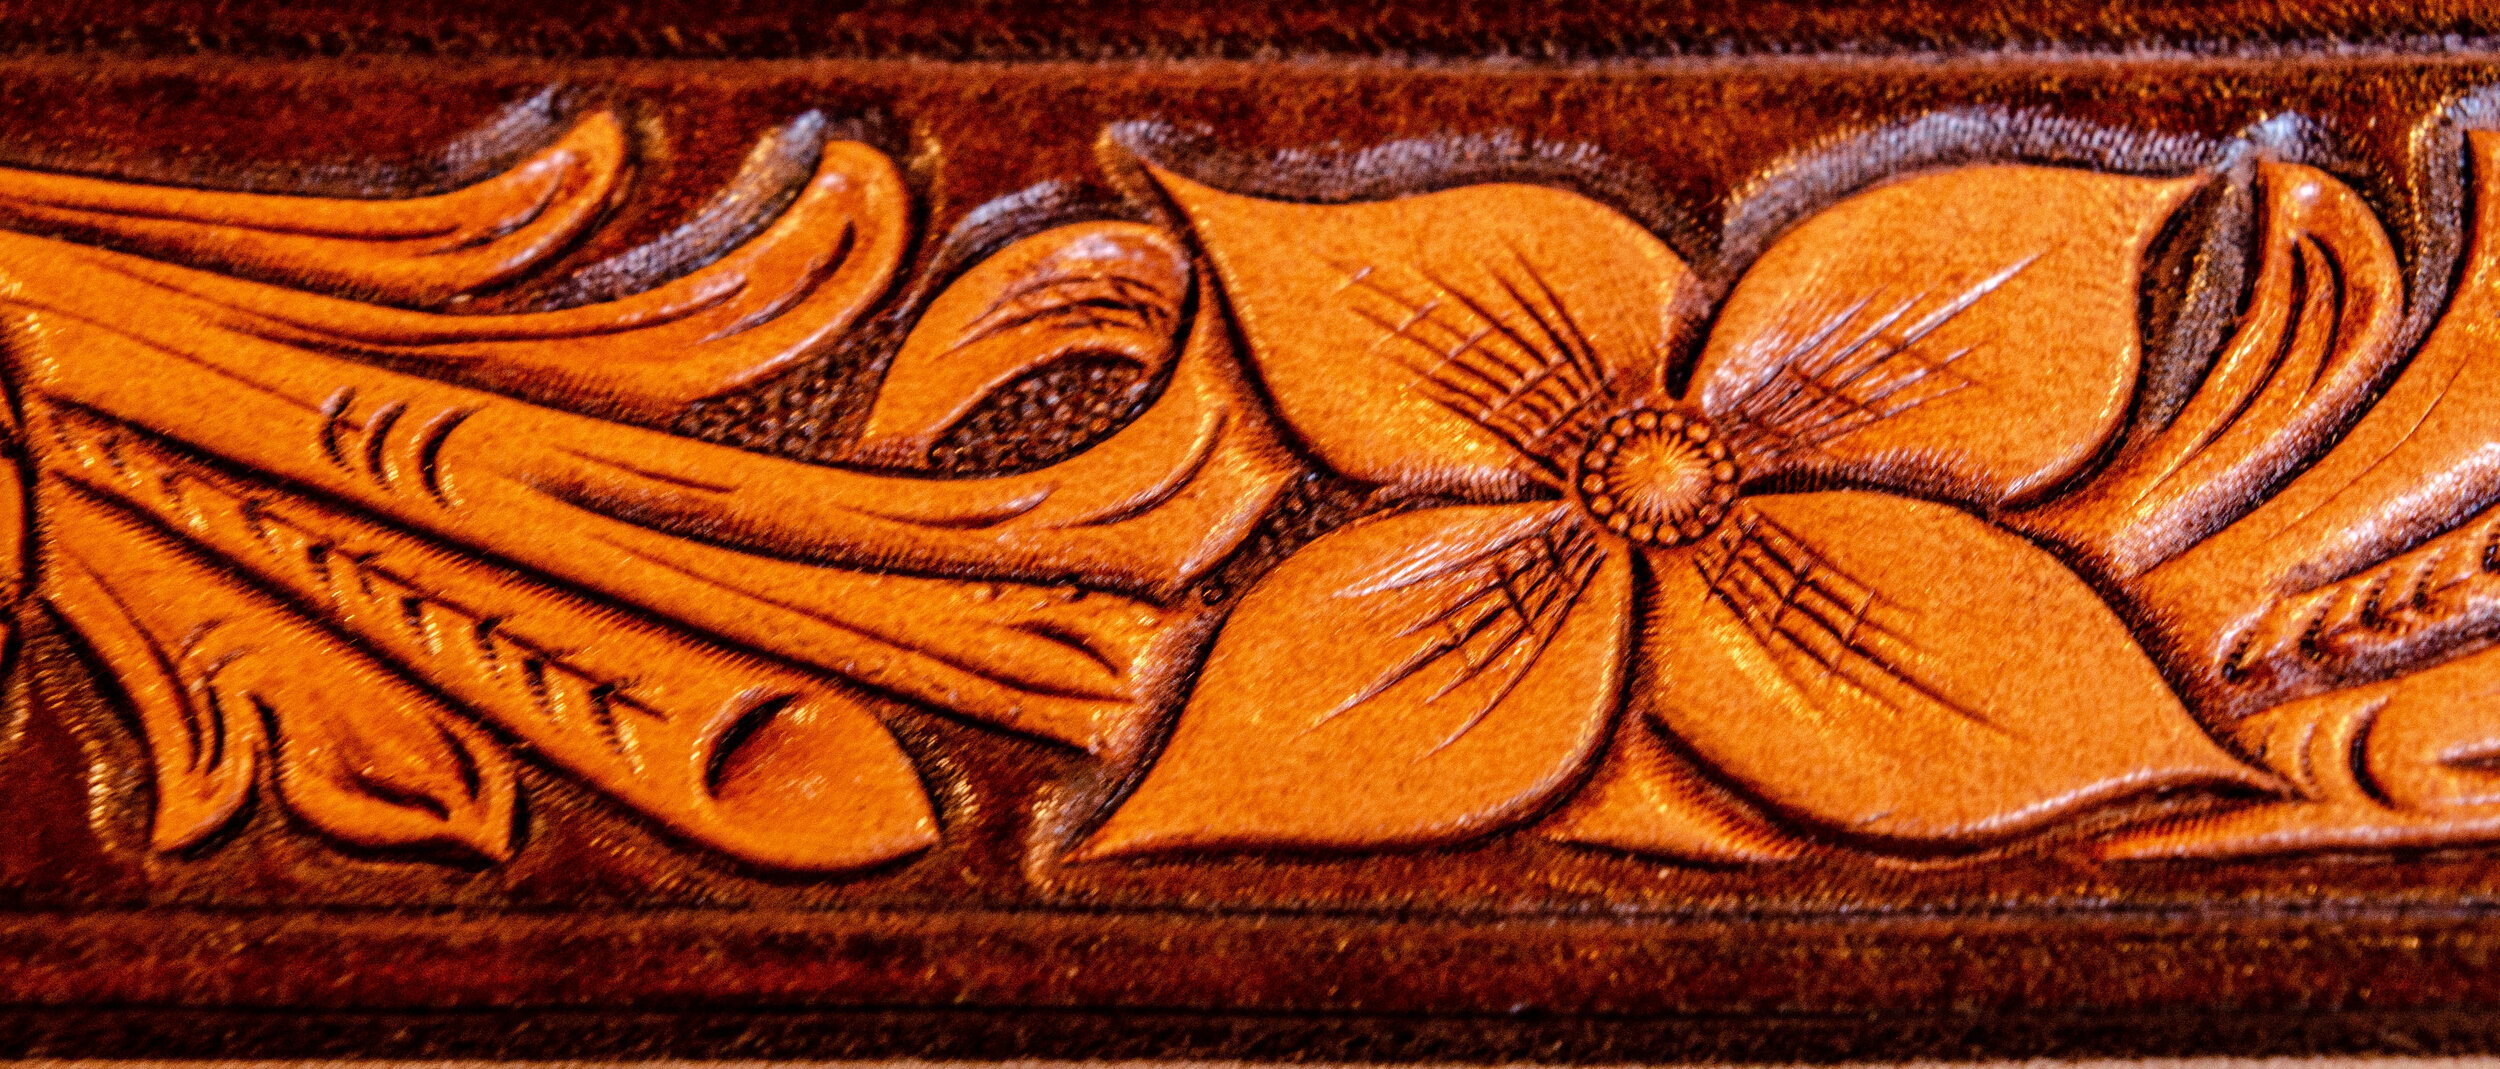 Floral Carving & Design - Building skills and techniques in the art of leather tooling